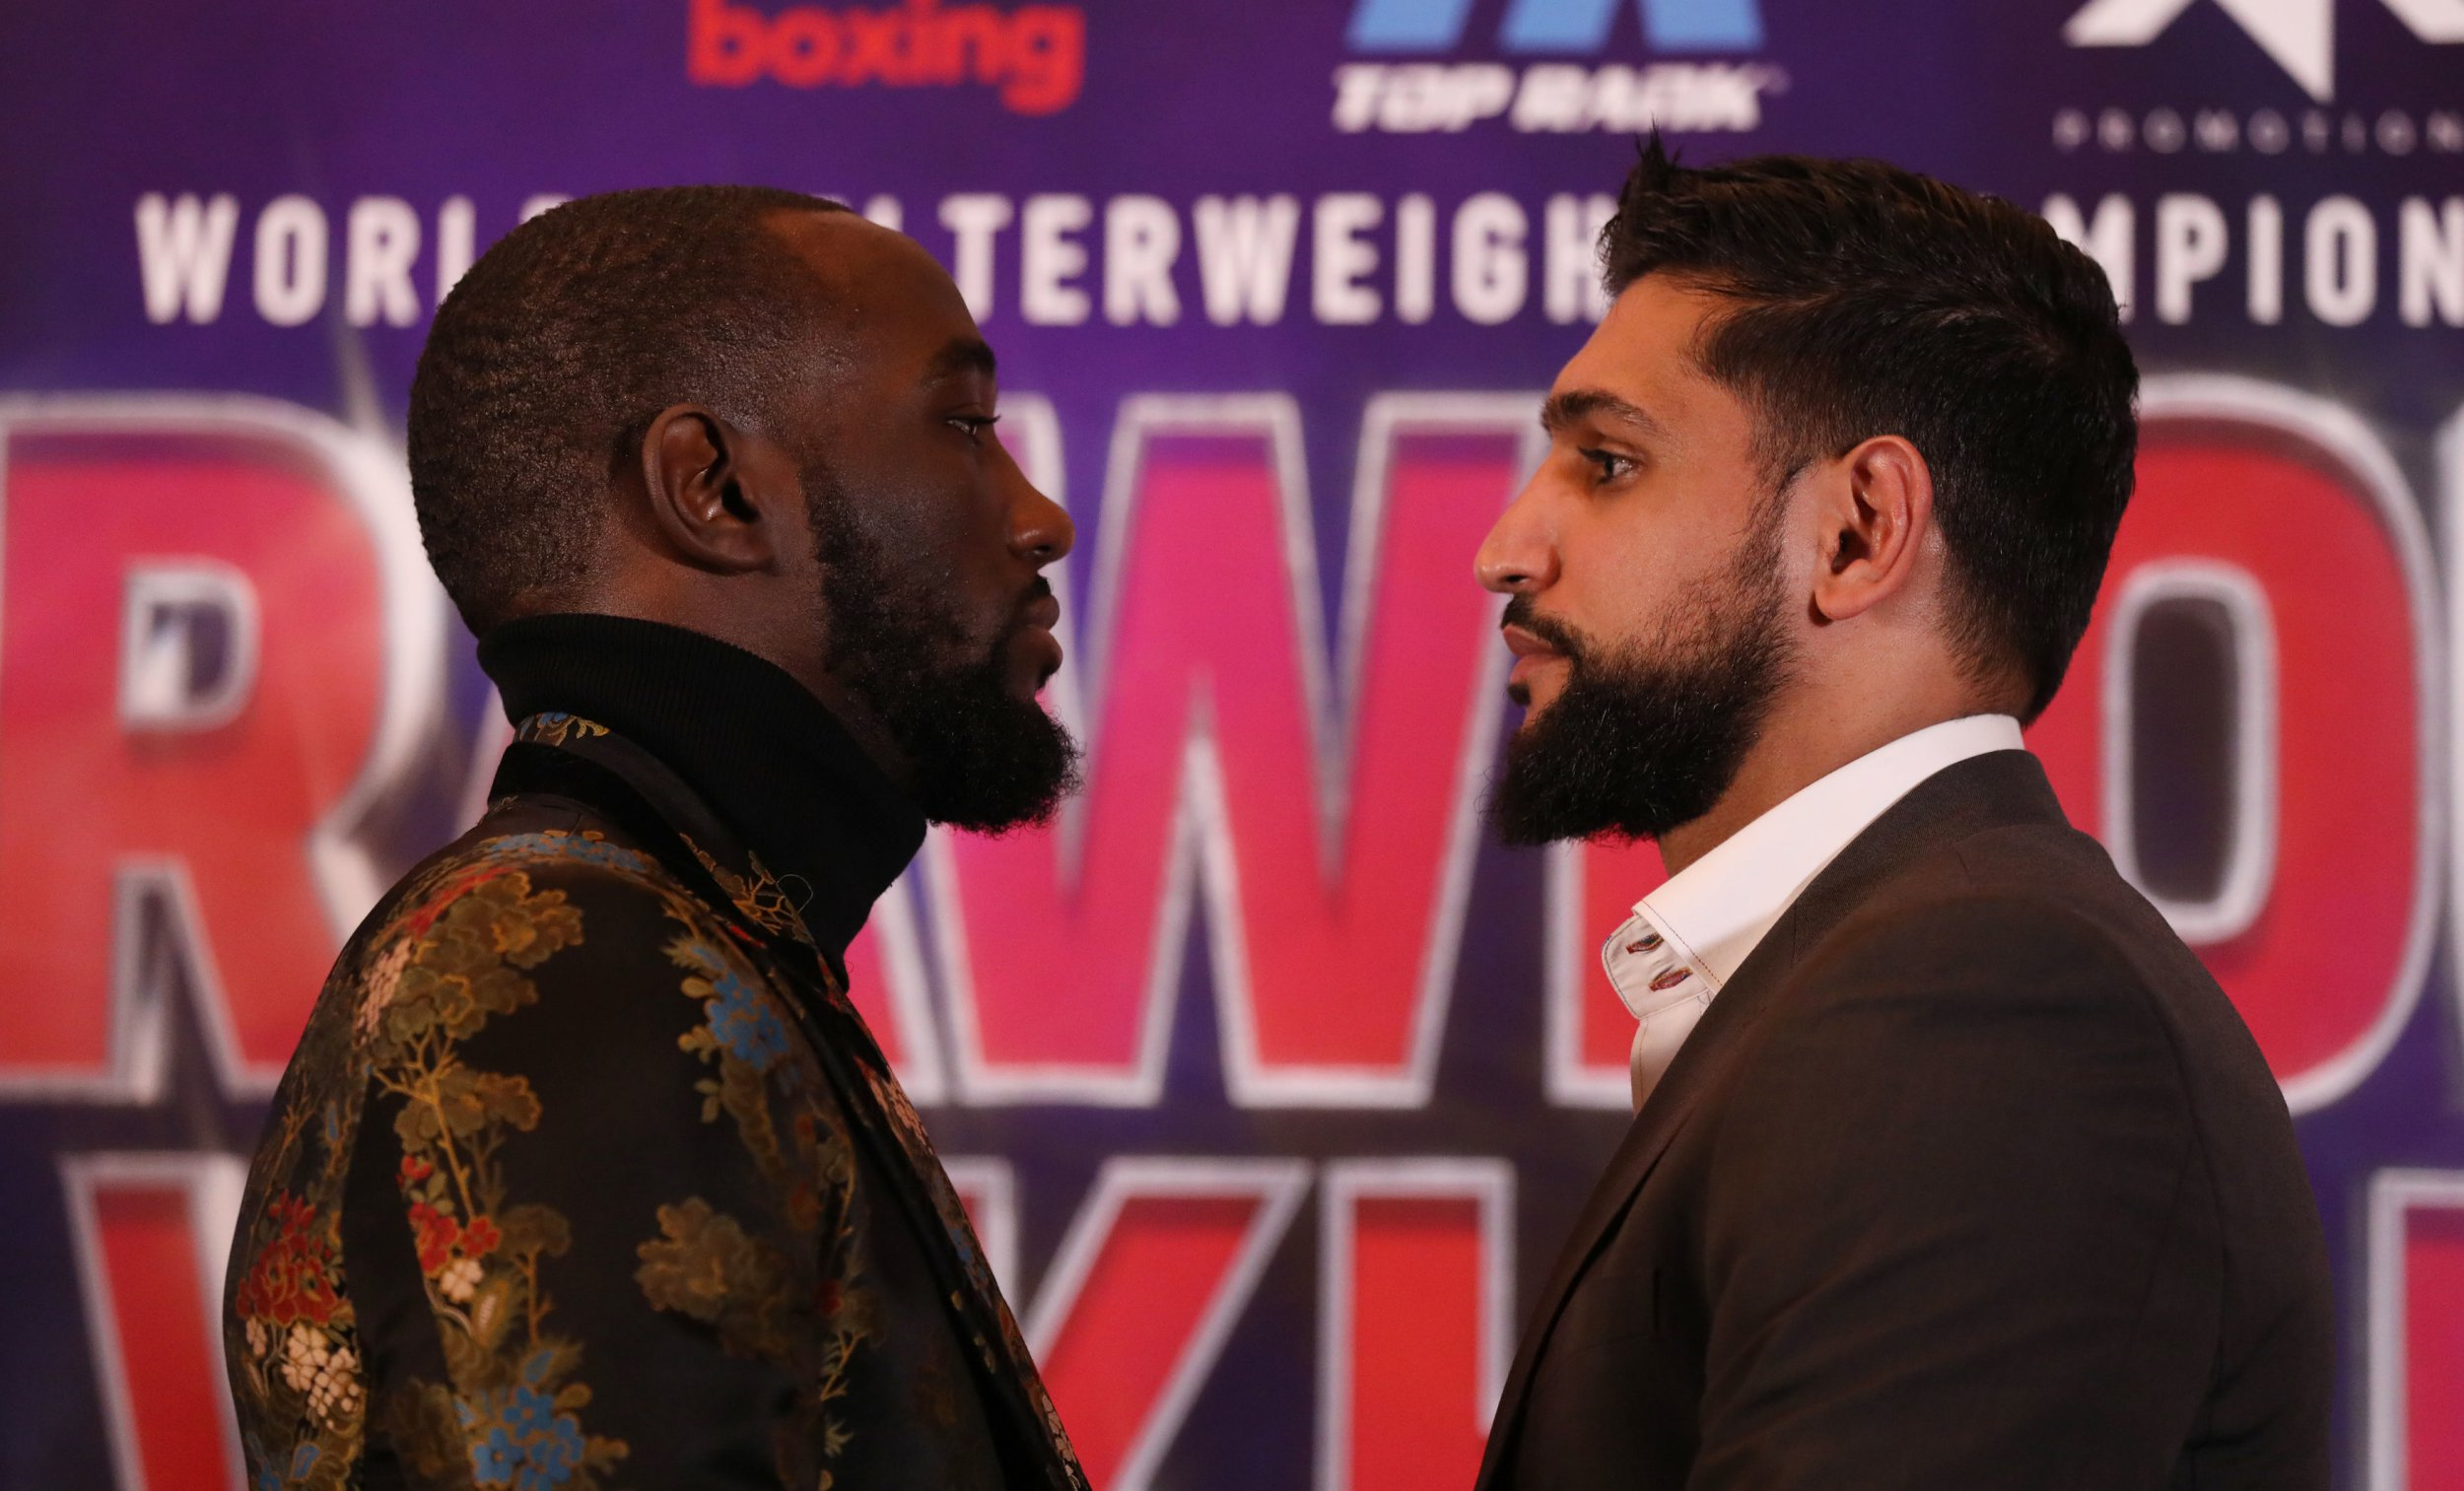 Terence Crawford (left) and Amir Khan during the press conference at The Landmark London Hotel, London. PRESS ASSOCIATION Photo. Picture date: Tuesday January 15, 2019. See PA story BOXING Khan. Photo credit should read: Isabel Infantes/PA Wire